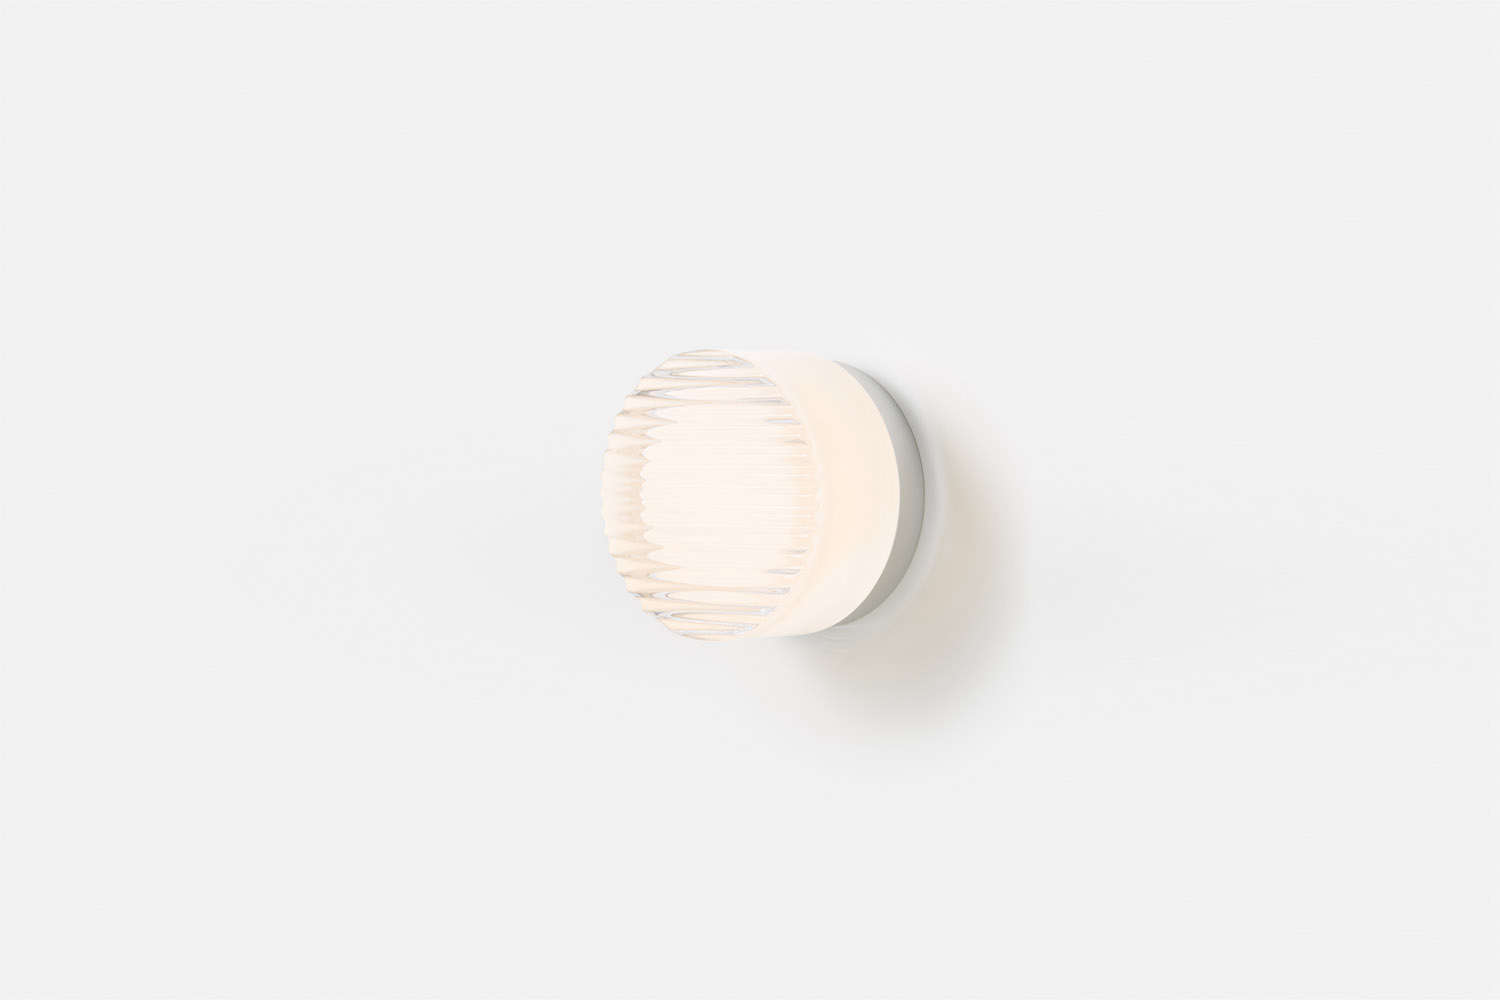 The Crisp Sconce starts at $3 from Rich Brilliant Willing.